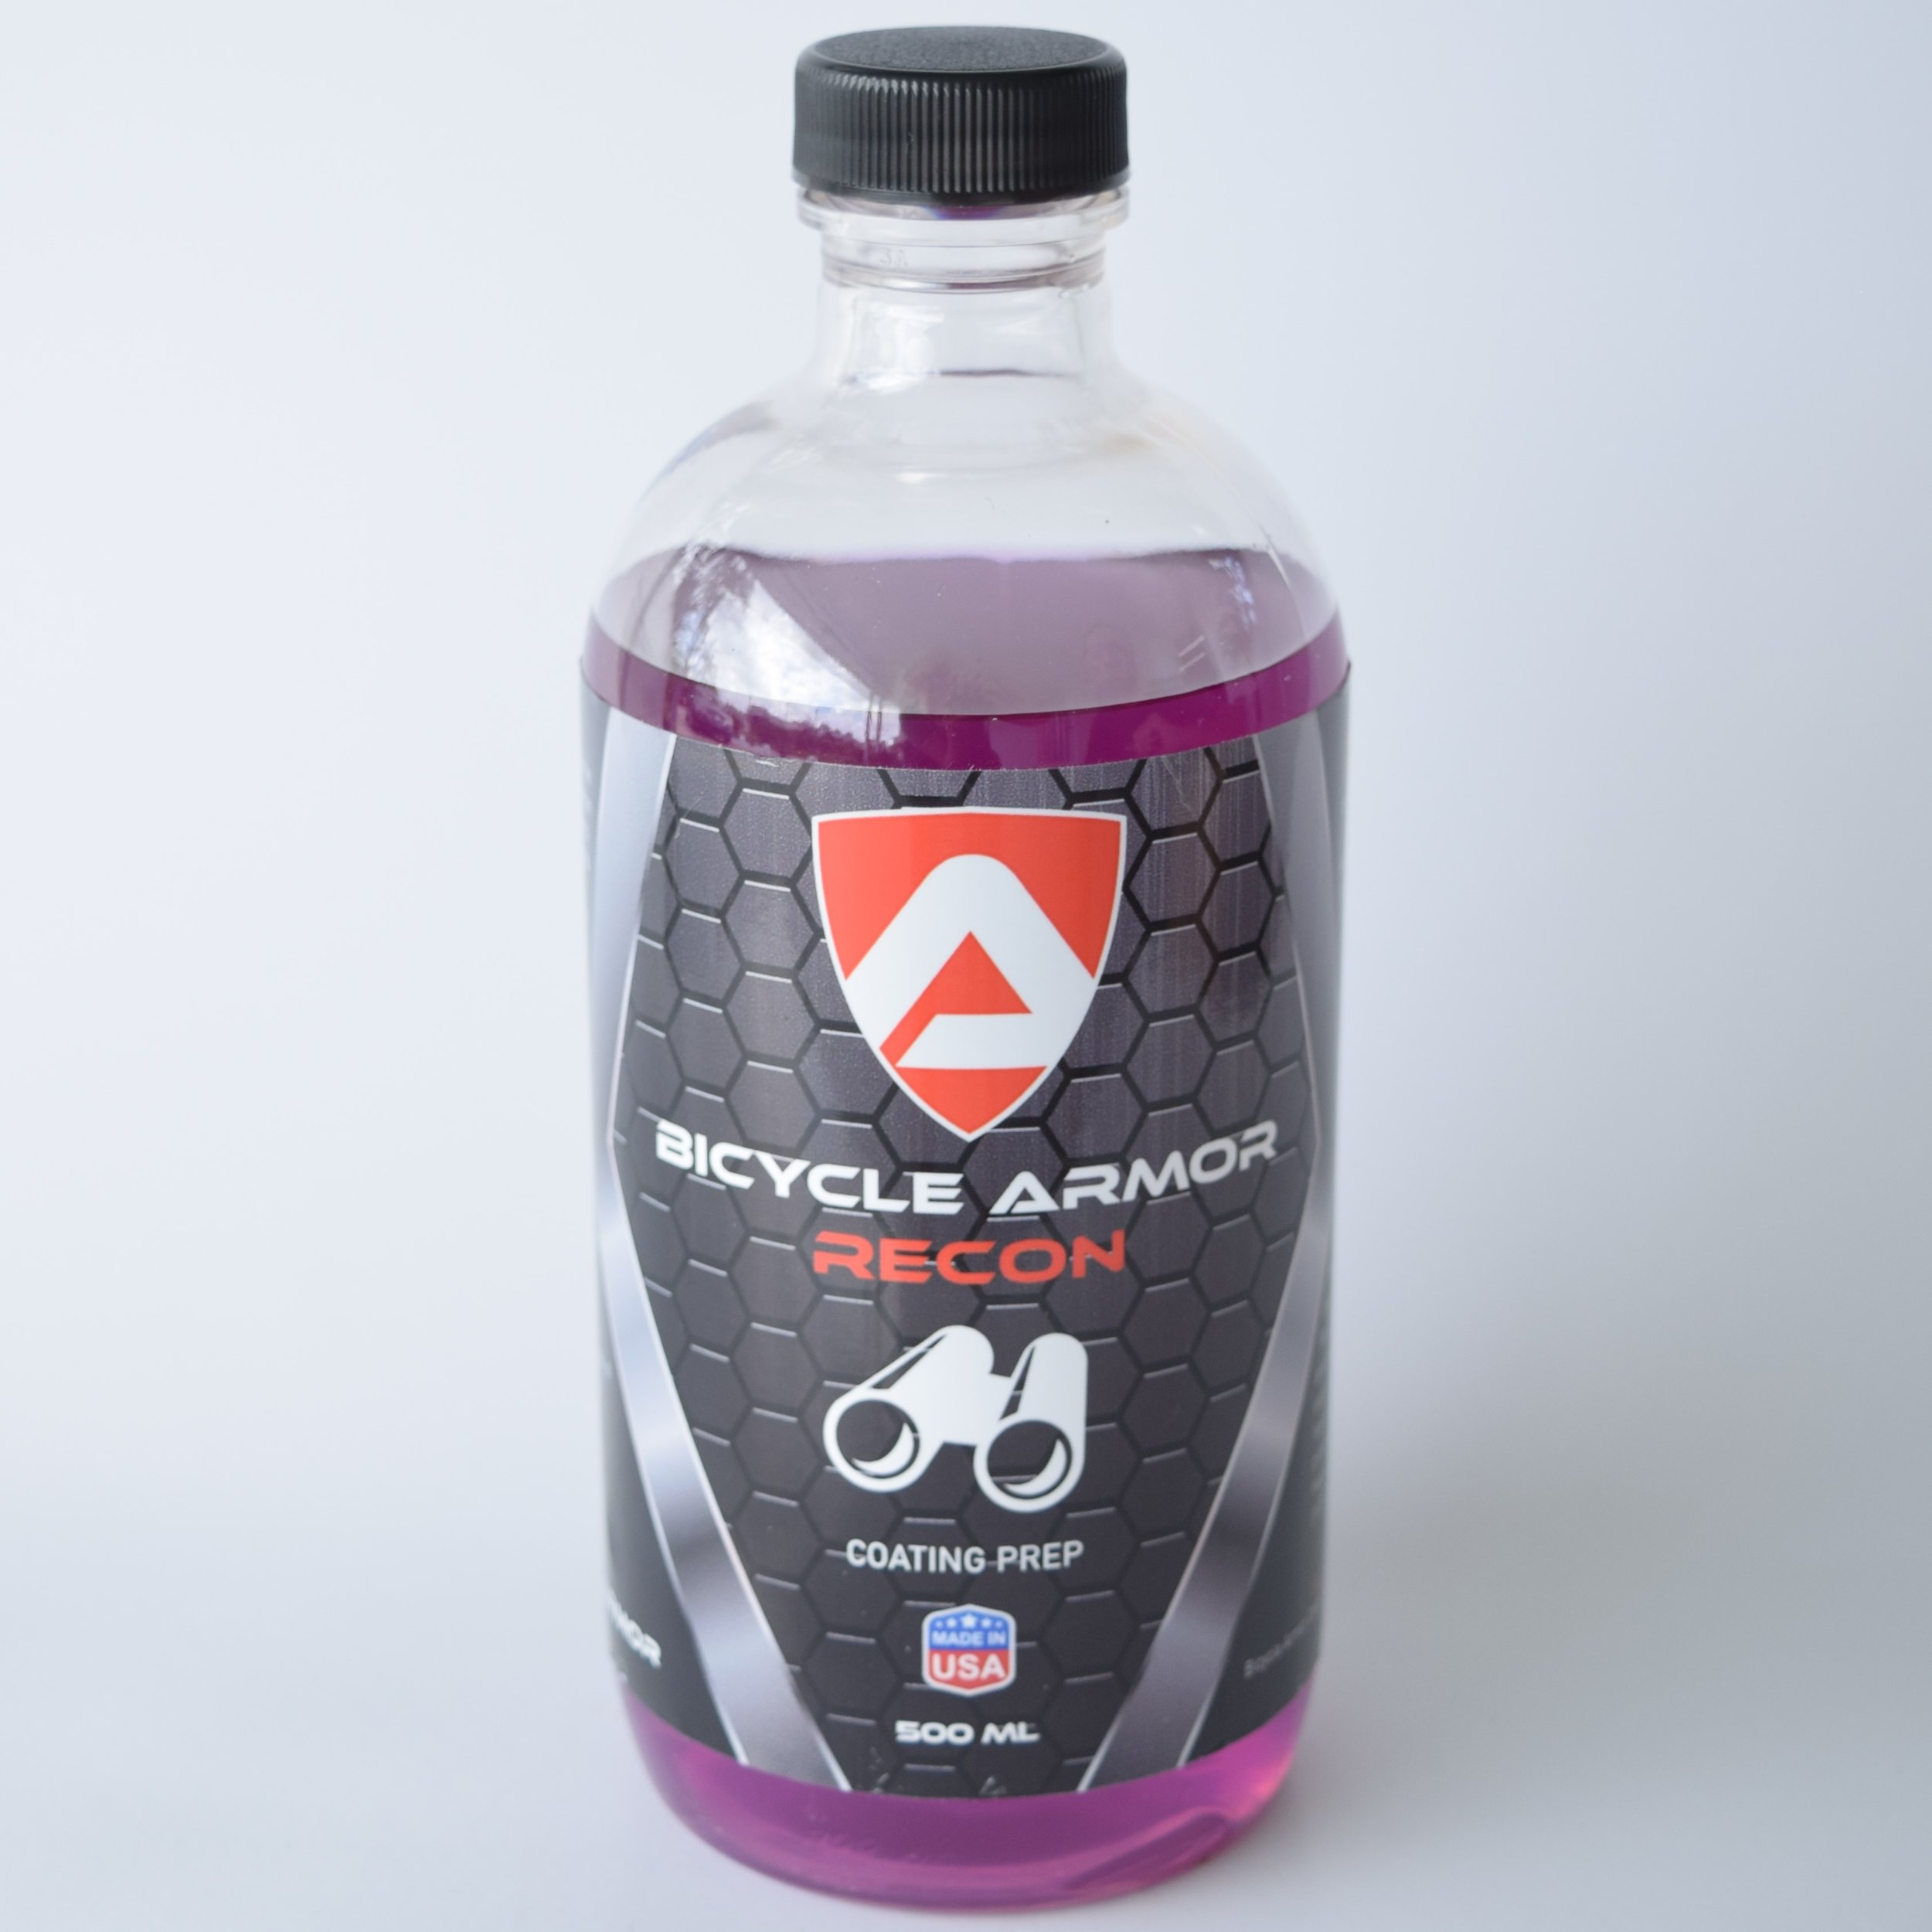 Recon - Bicycle Armor Recon is a specially formulated prep product that will degrease and strip the frame and parts from contaminations. It will make sure the coast is clear, so you can start coating. Don't be shy using enough of this product.